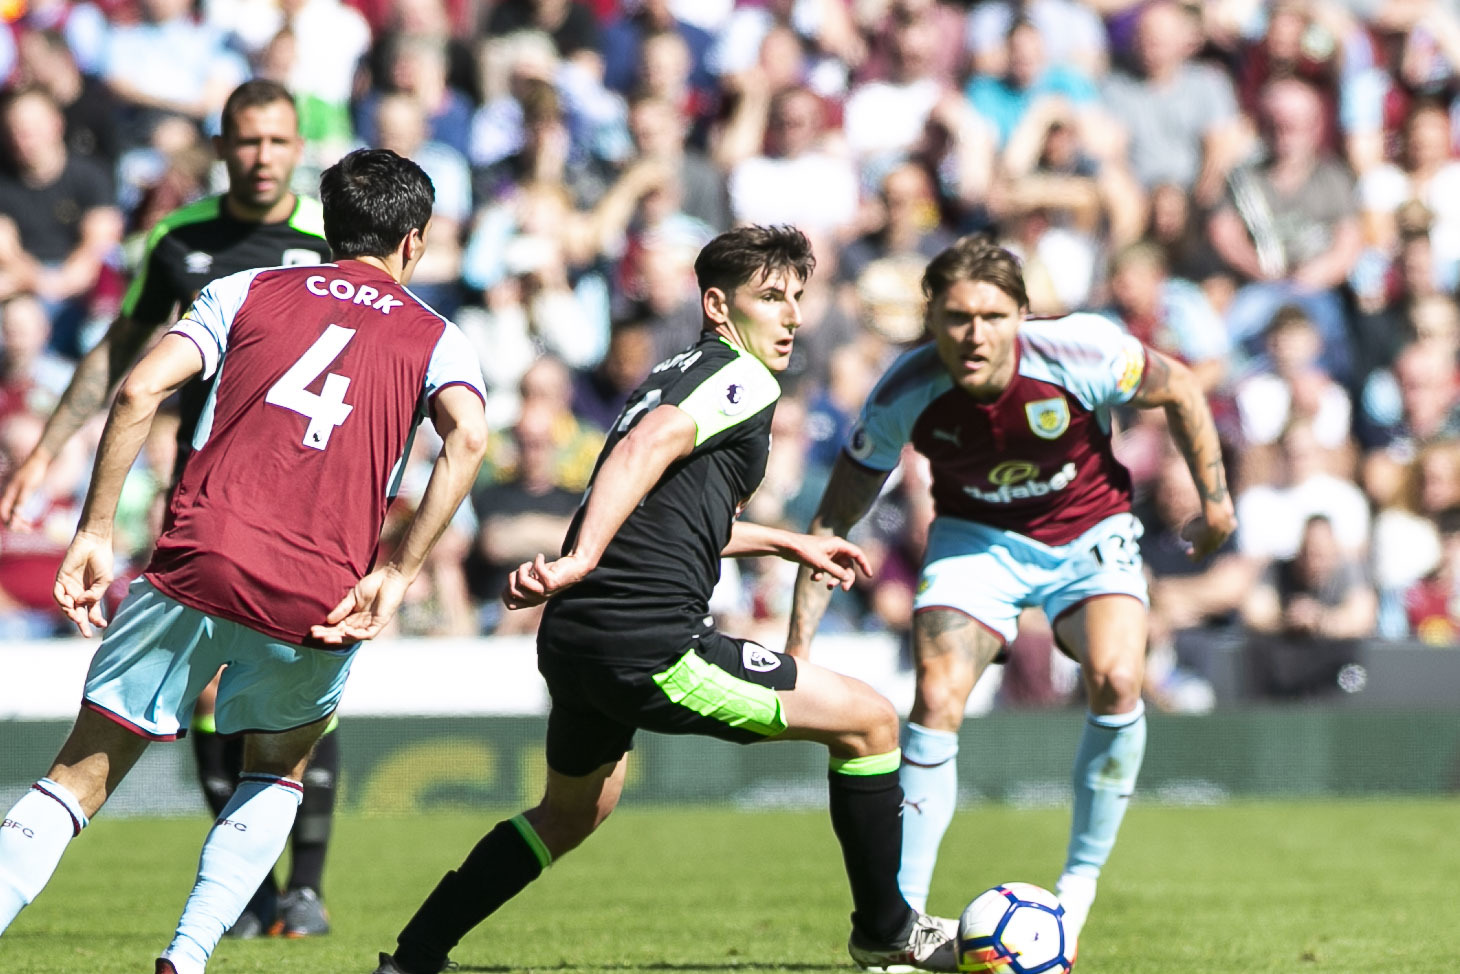 AFC Bournemouth loanee Emerson Hyndman off to super start for Atlanta with assist in US Open Cup